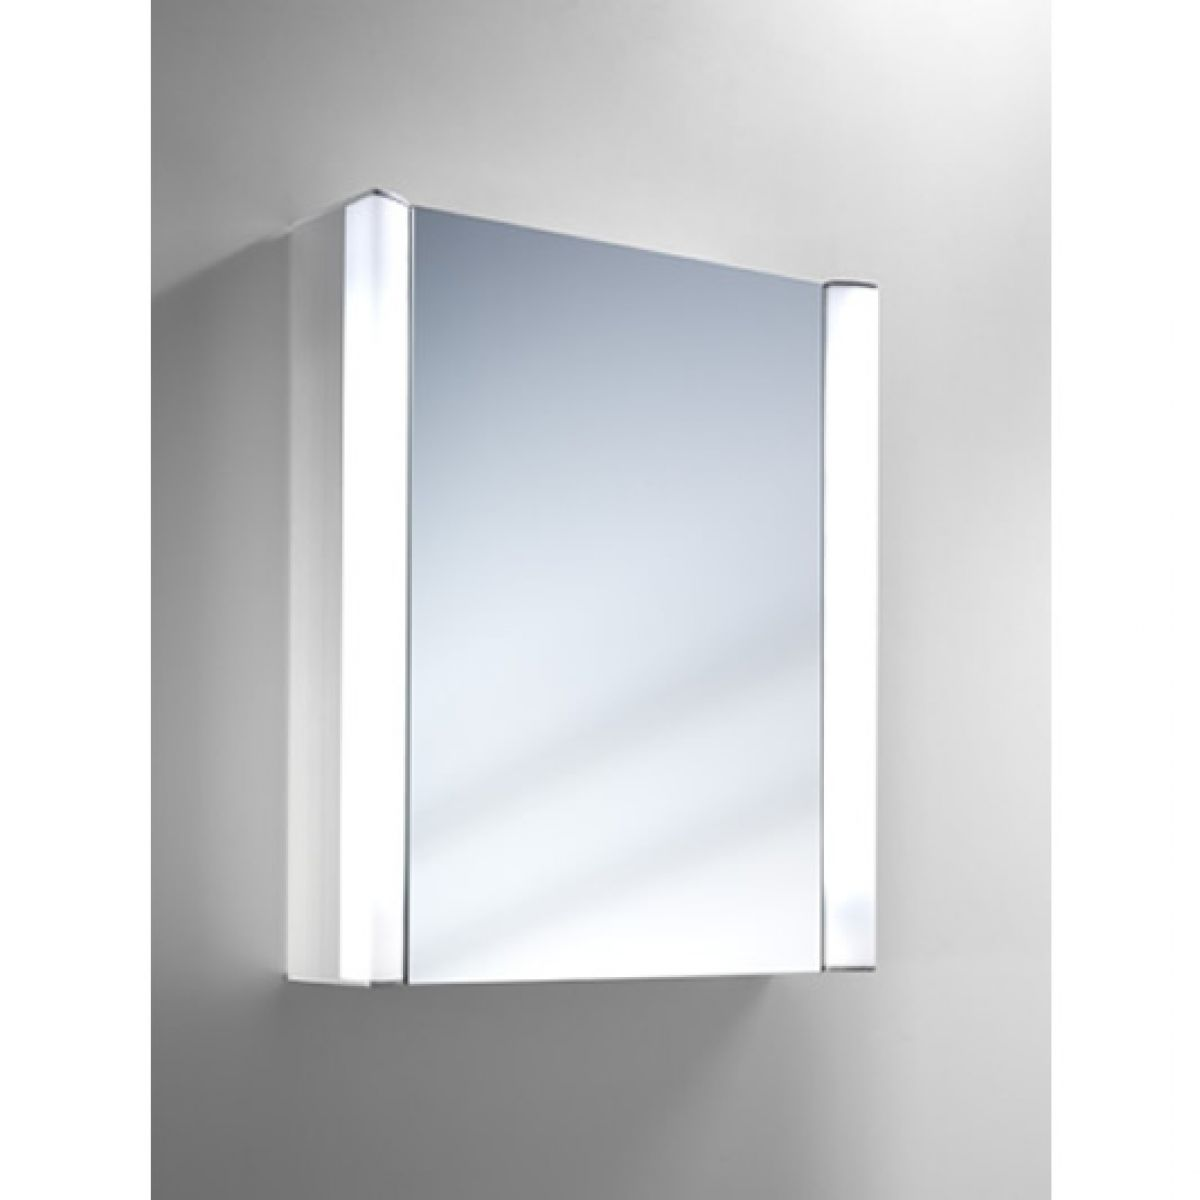 schneider bathroom cabinet schneider moanaline illuminated bathroom cabinet uk 25872